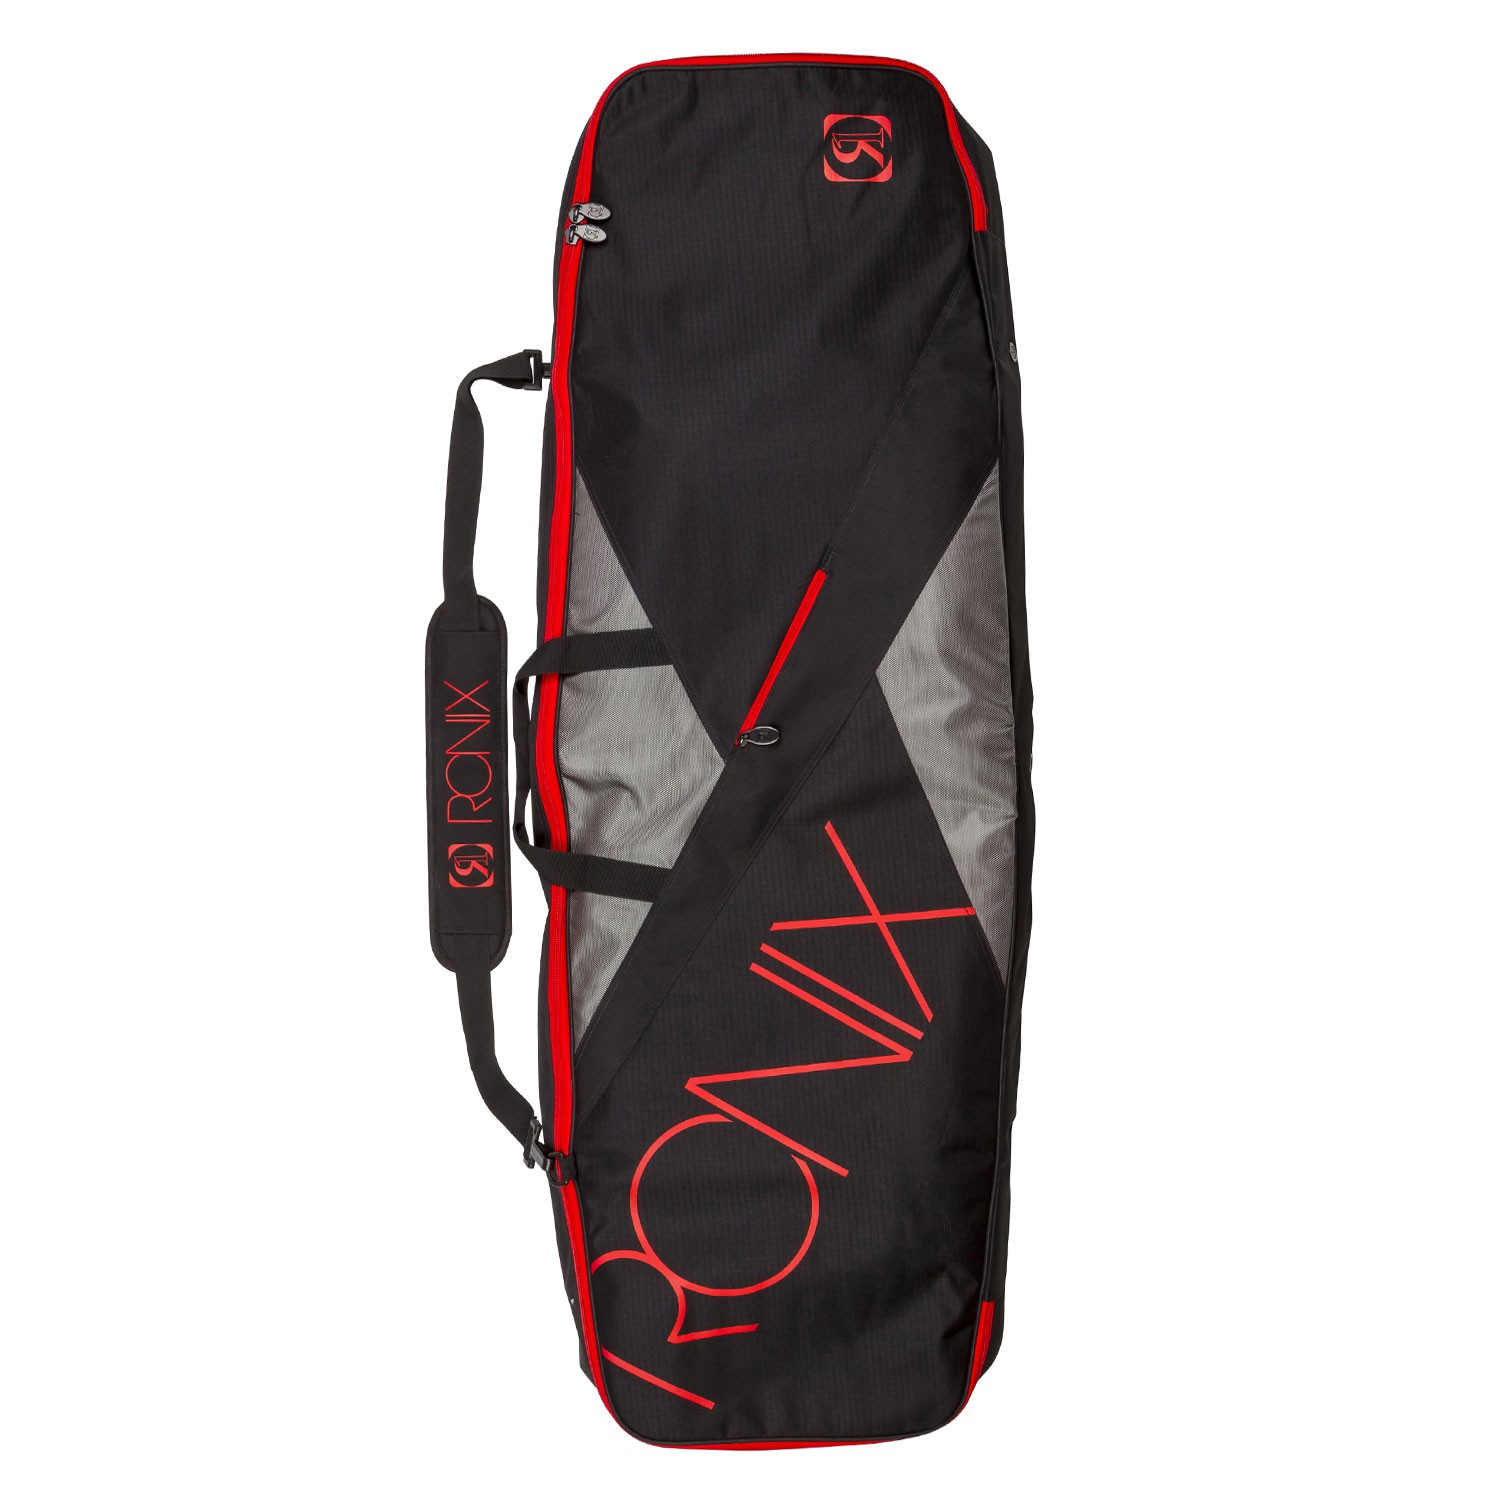 Obal Ronix Battalion Padded black/caffeinated